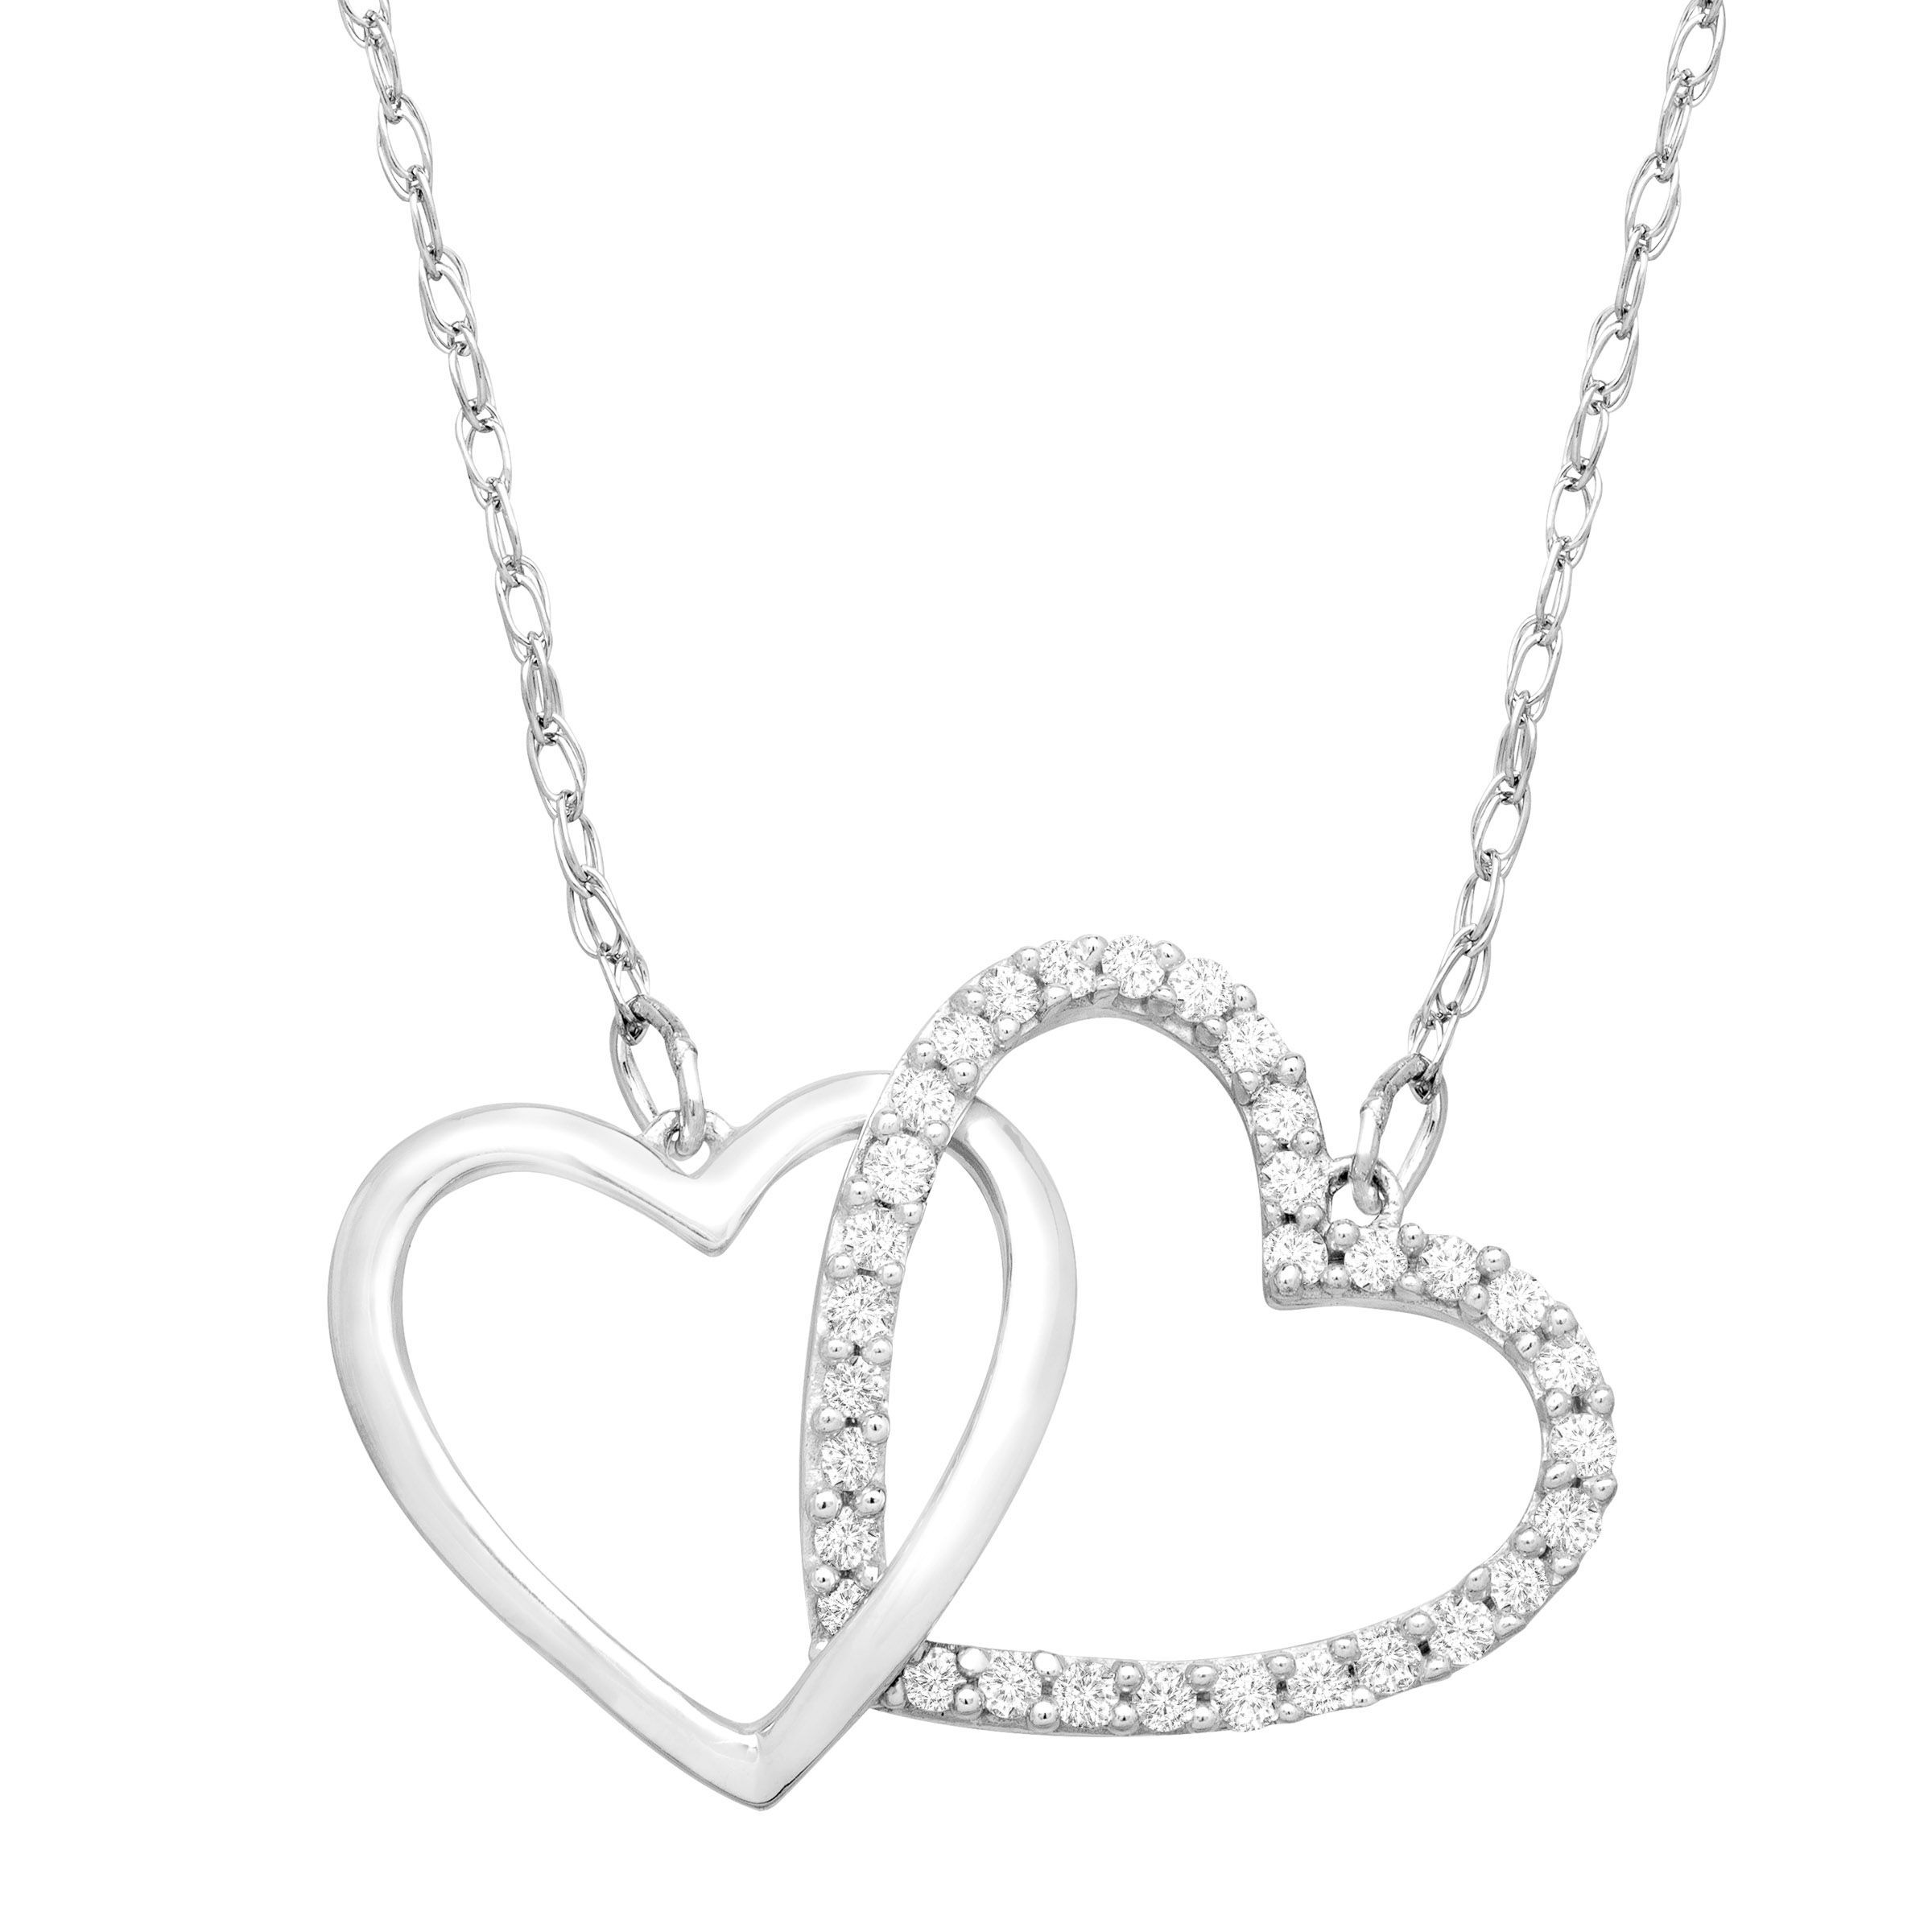 jewellery white sideways yg jewelry diamond pave kaye necklace products jane heart